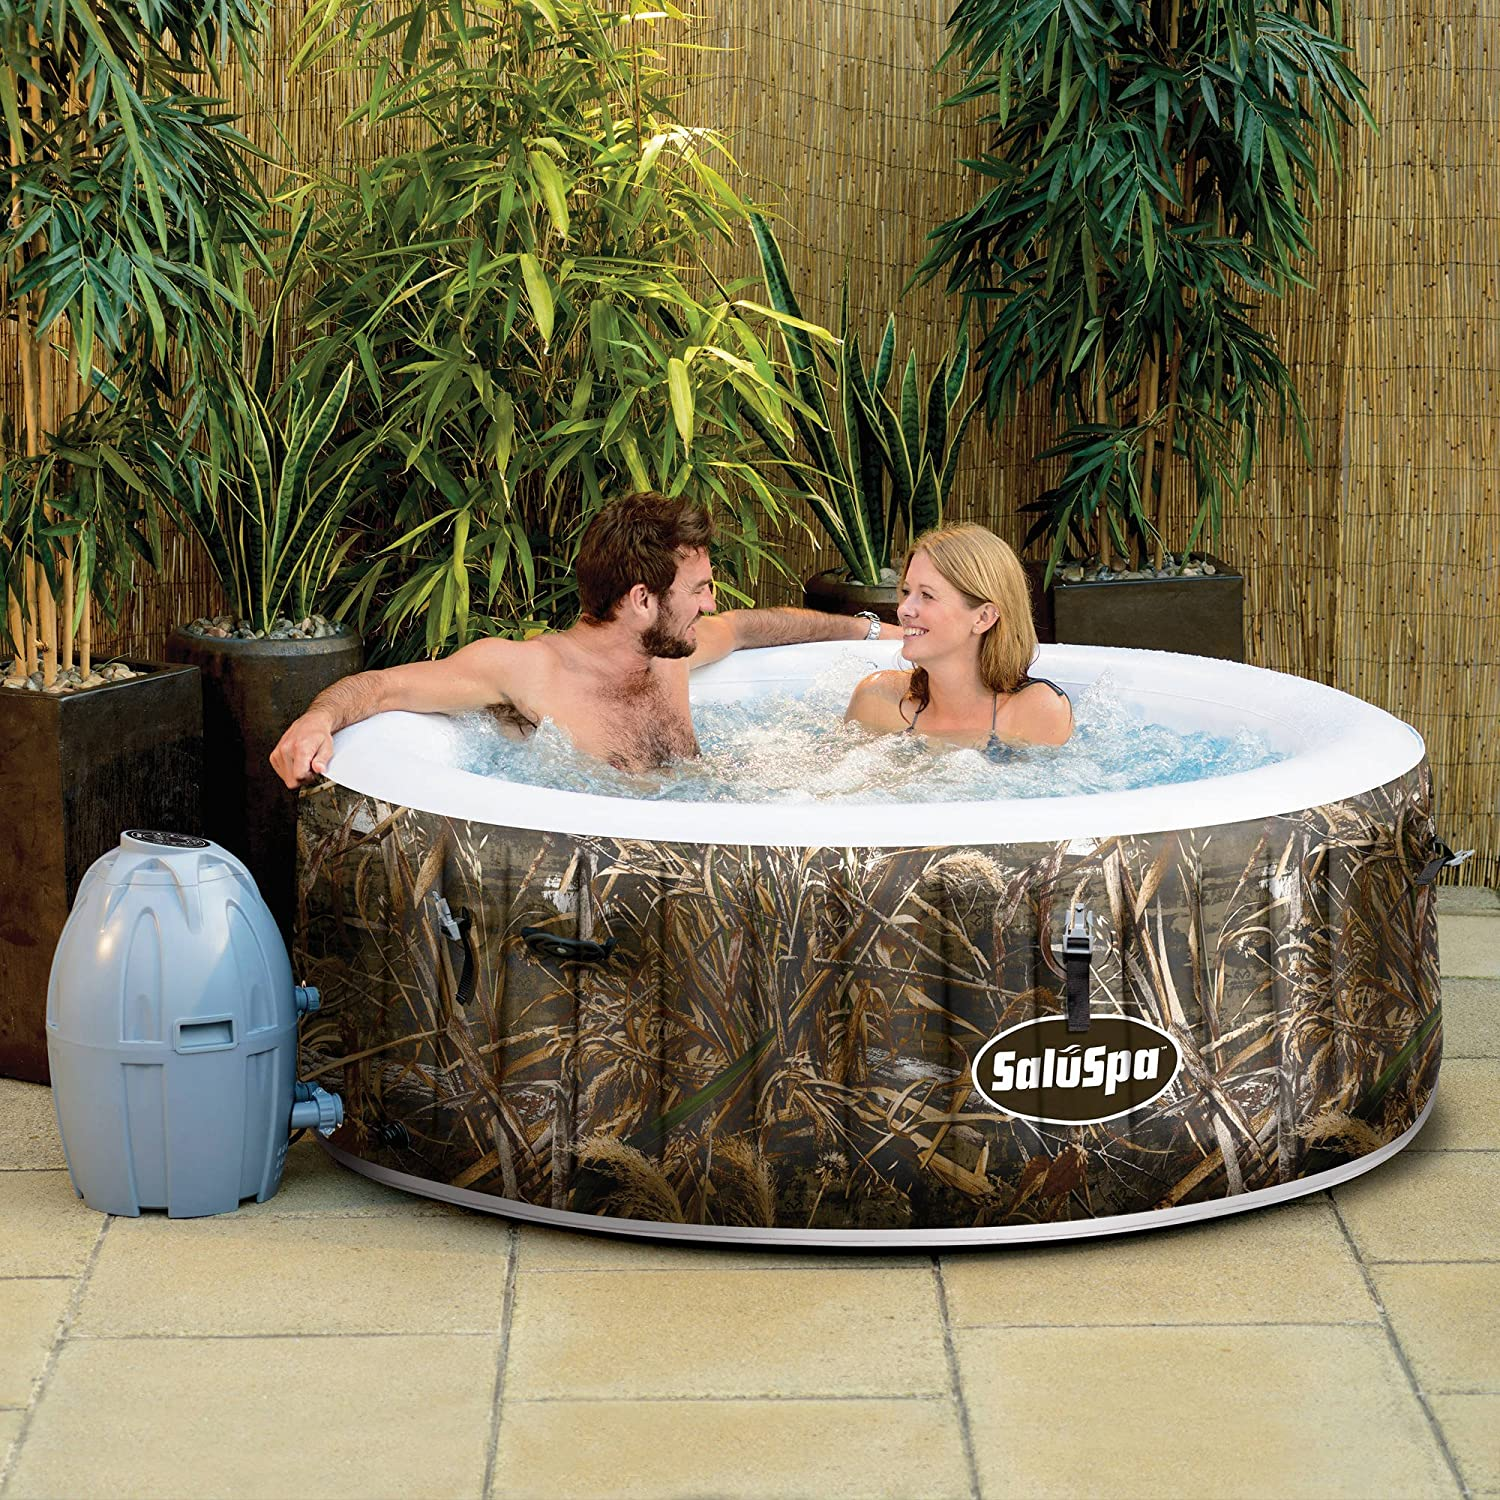 SaluSpa Realtree MAX-5 AirJet 4 Person Portable Inflatable Hot Tub Spa